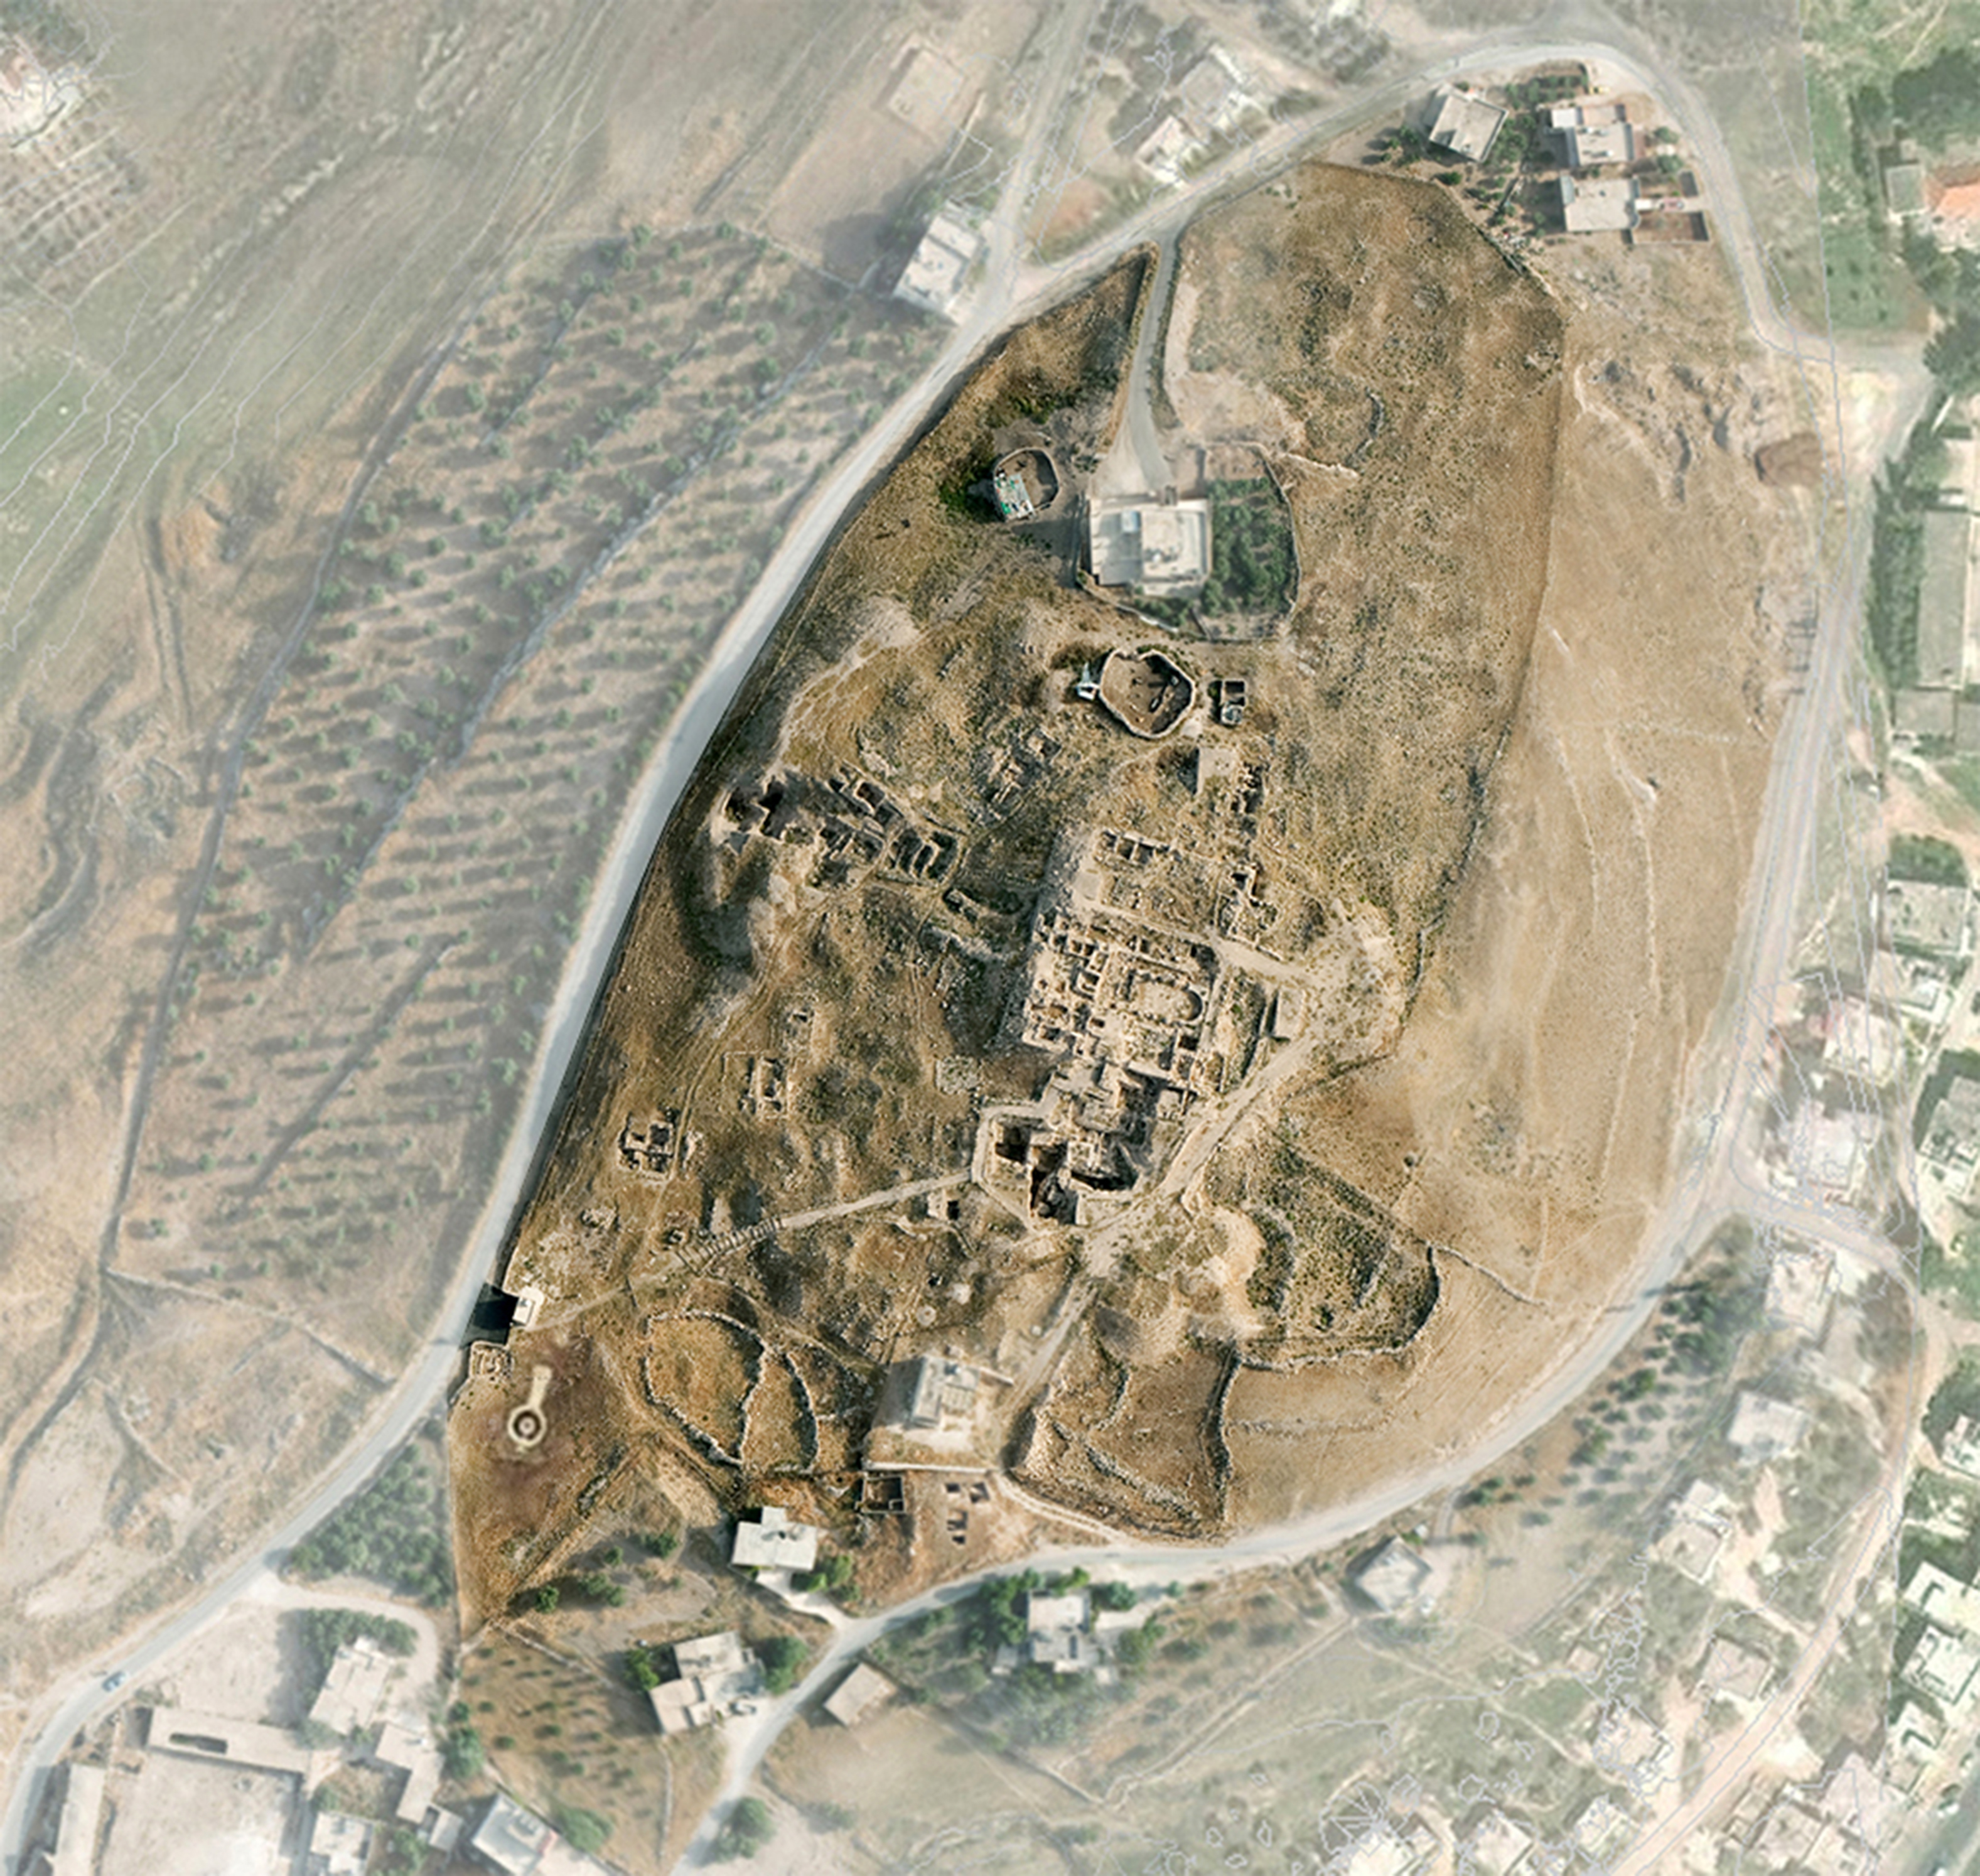 Aerial view of the excavation site Tall Hisban in Jordan co-founded in 1968 by archaeologist Dr. Larry Geraty in whose name an endowment has been established to protect and preserve the site. (Courtesy: Madaba Plains Project)